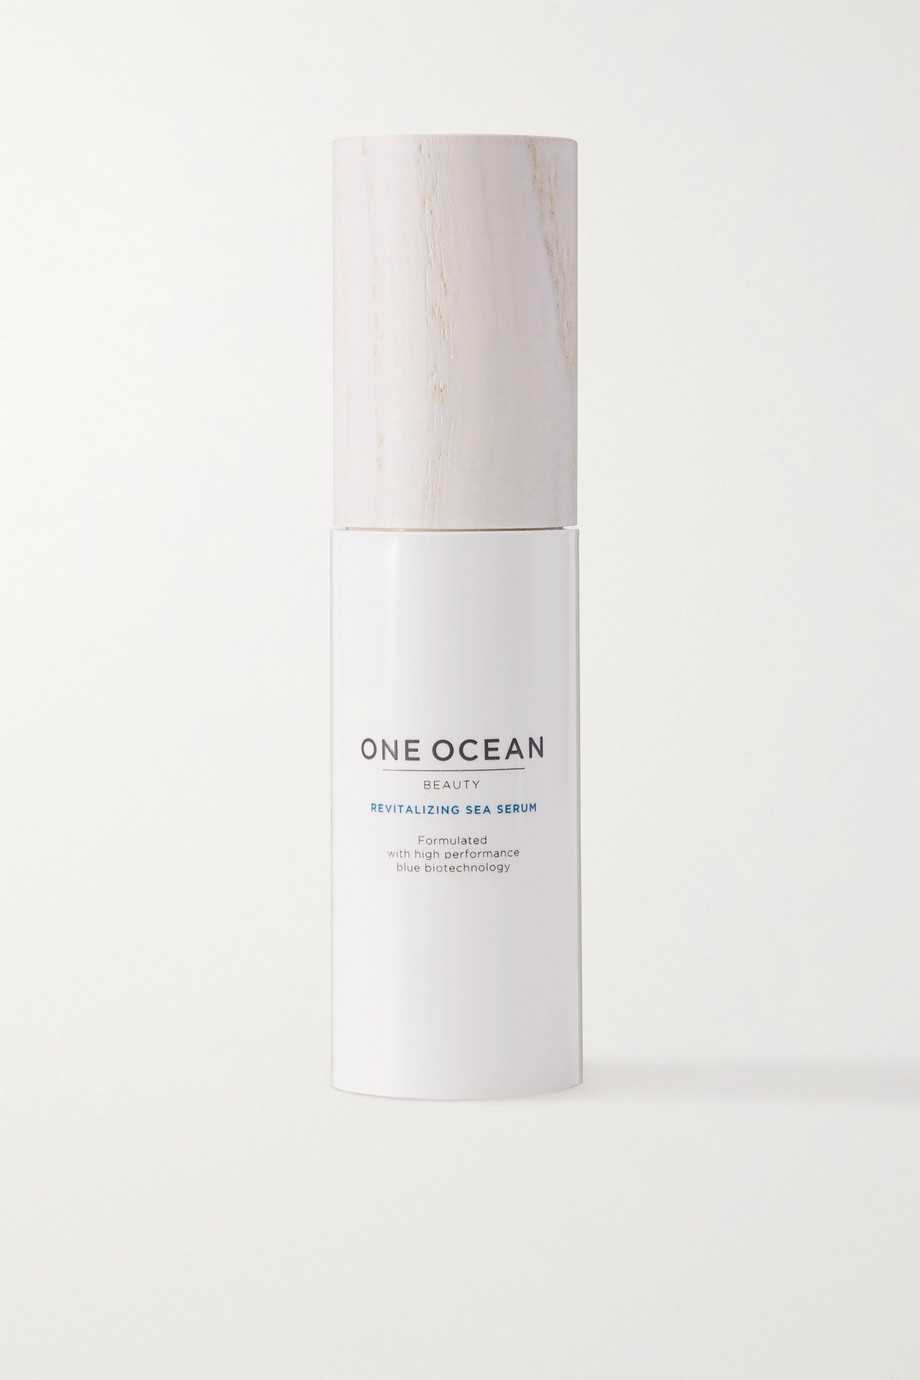 ONE OCEAN BEAUTY Revitalizing Sea Serum, 30ml